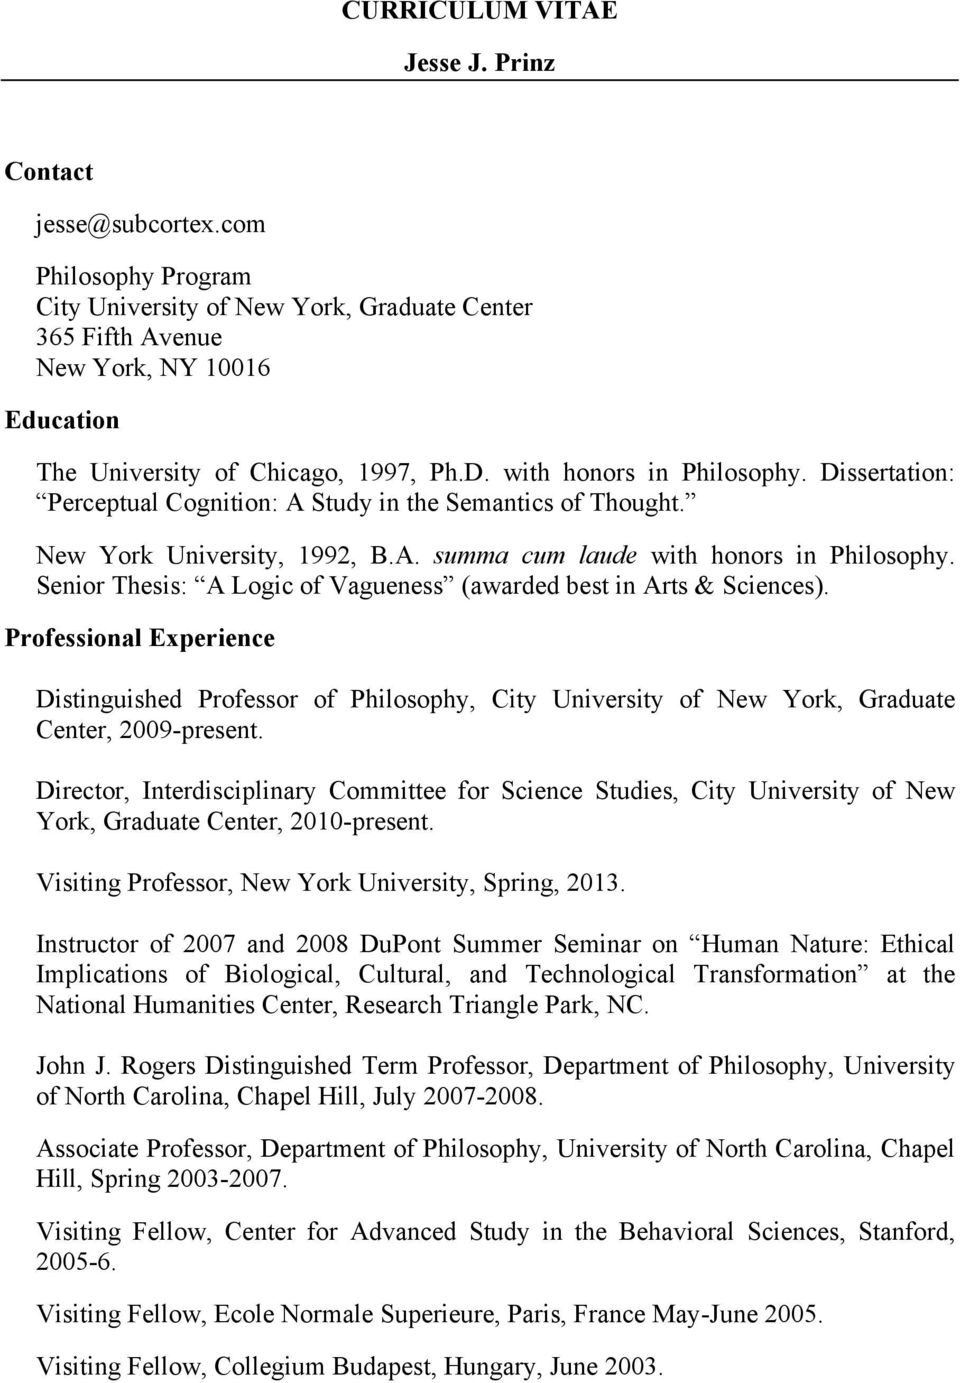 Dissertation: Perceptual Cognition: A Study in the Semantics of Thought. New York University, 1992, B.A. summa cum laude with honors in Philosophy.